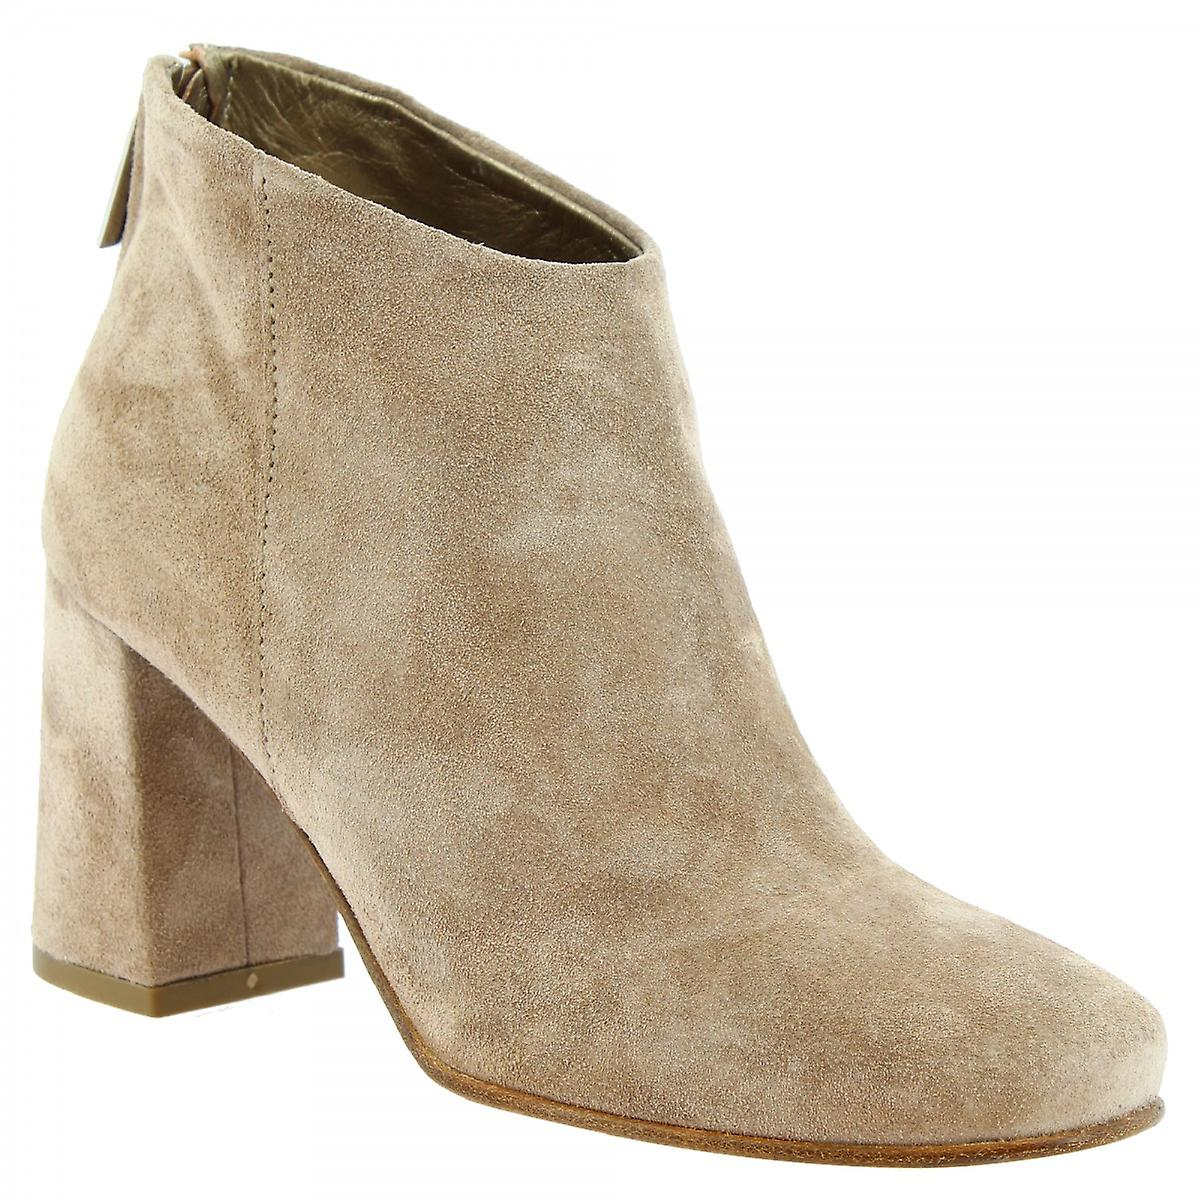 Leonardo Shoes Women's handmade heeled ankle boots in beige suede leather jrepX